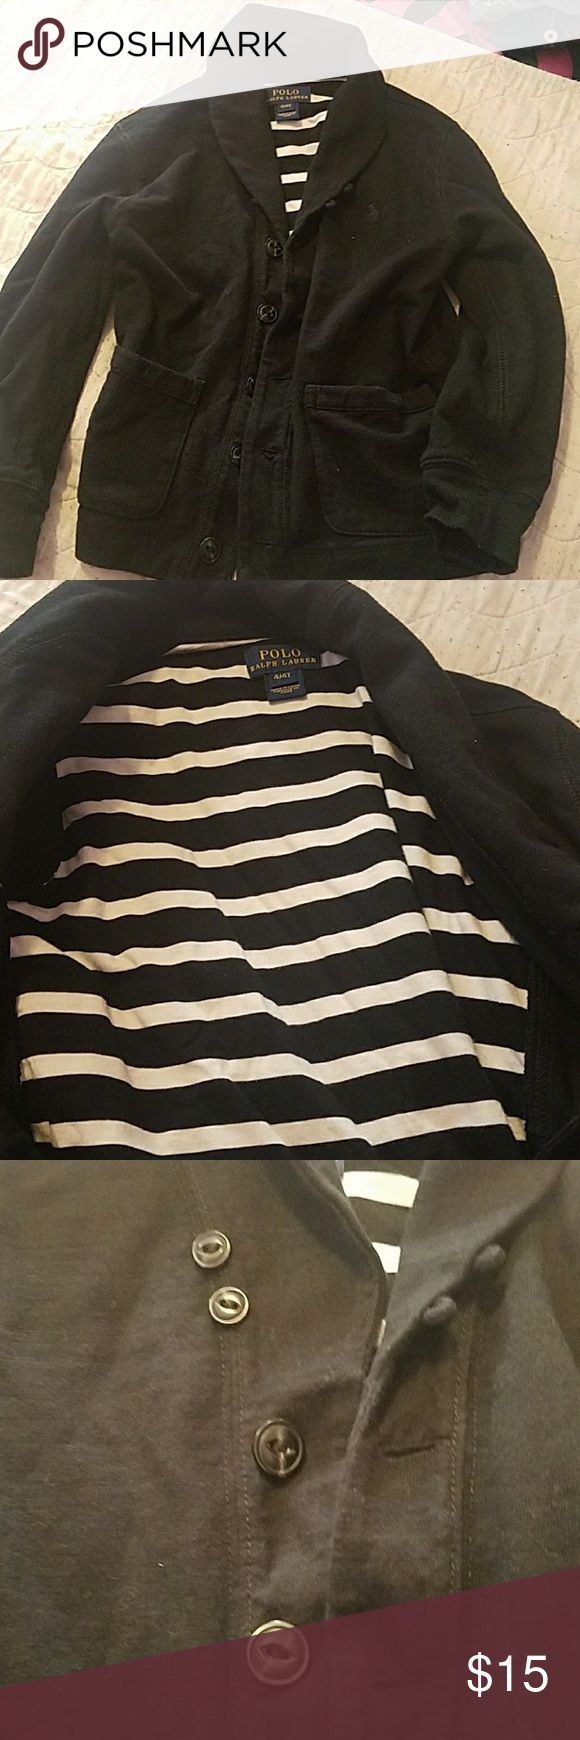 Toddler boys sweater Cute all black sweater. Only wore once. 8n great condition. Cute when paired with jeans or black khaki pants. Cute to wear for winter or the holidays. Polo by Ralph Lauren Shirts & Tops Sweaters